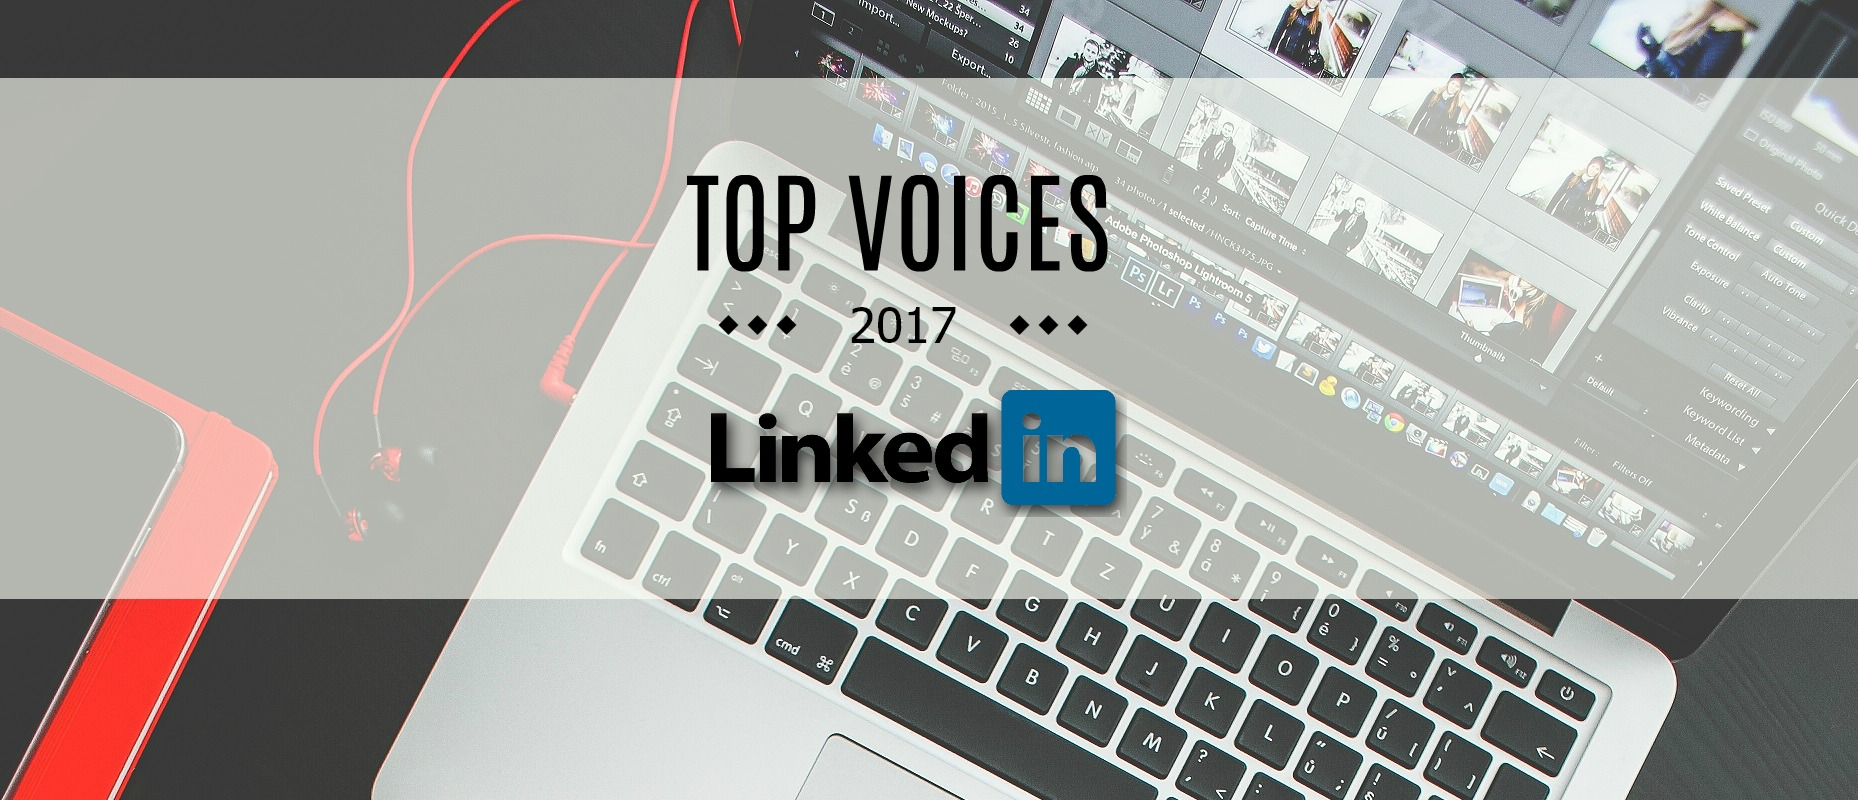 Top Voices 2017 LinkedIn